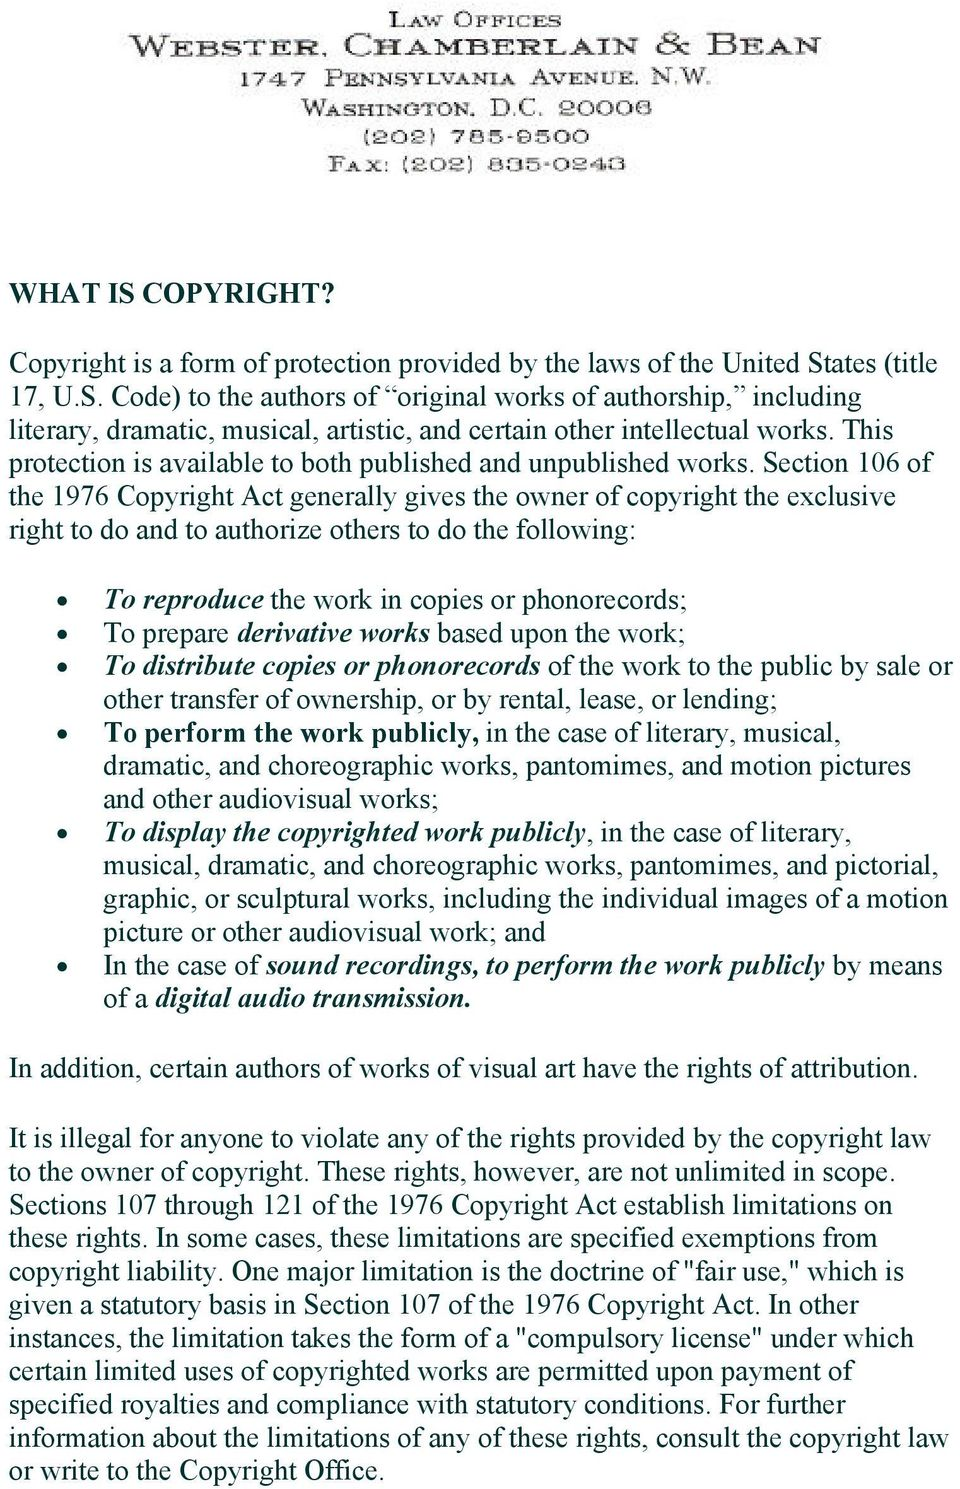 Section 106 of the 1976 Copyright Act generally gives the owner of copyright the exclusive right to do and to authorize others to do the following: To reproduce the work in copies or phonorecords; To